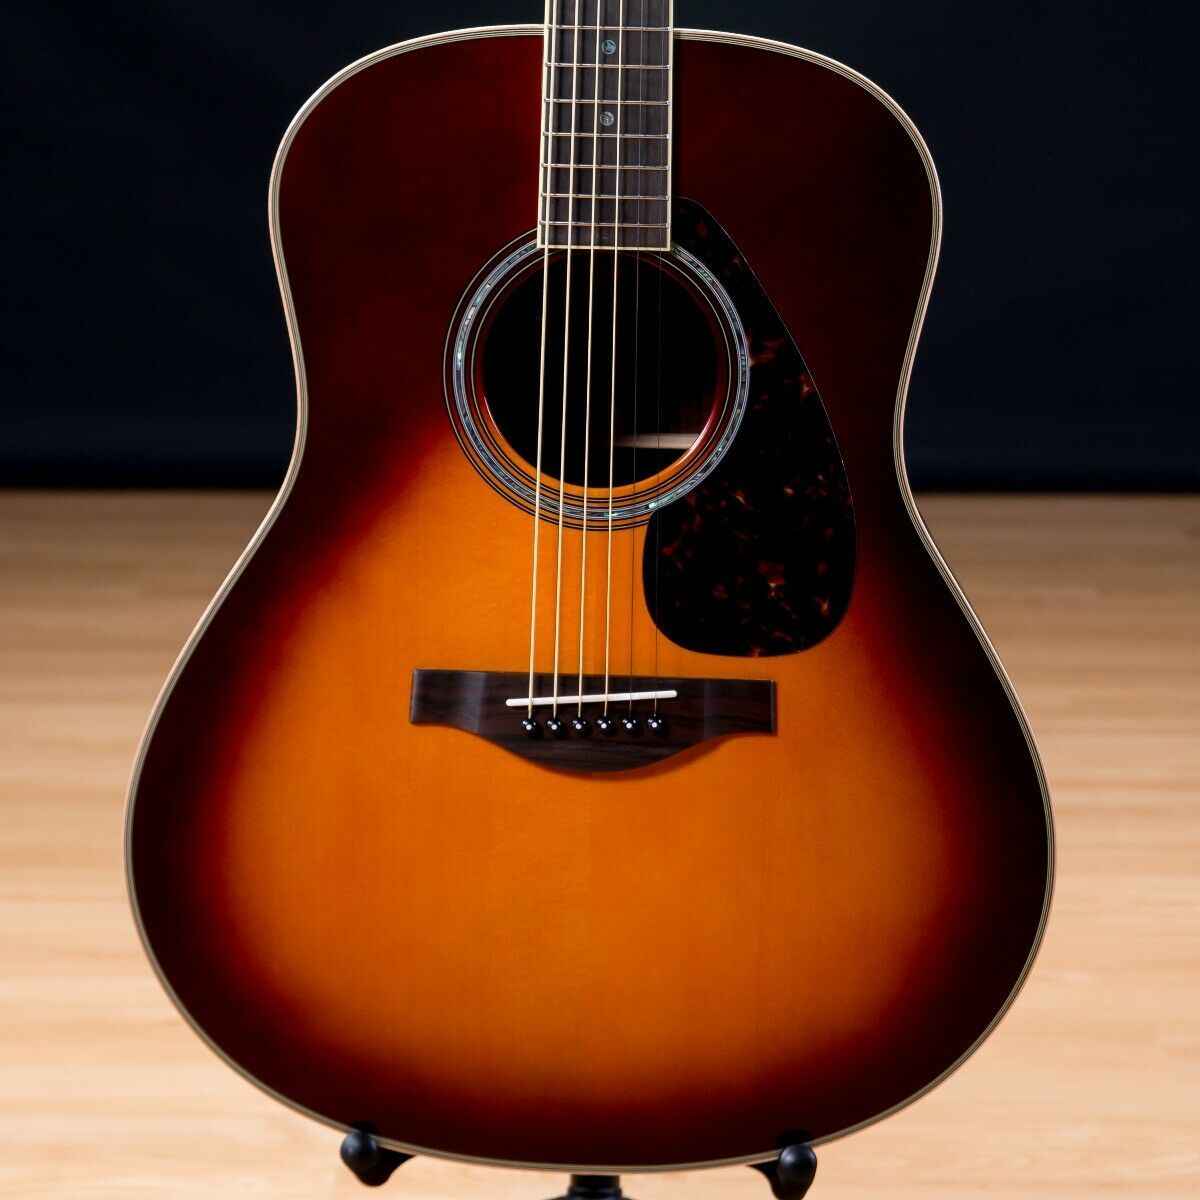 Yamaha Ll16 Are Acoustic Electric Guitar Brown Sunburst Sn Hpo280659 Ideas Of Acoustic Guitar Acousticguitar Yamaha Guitars Acoustic Guitar Yamaha Guitar